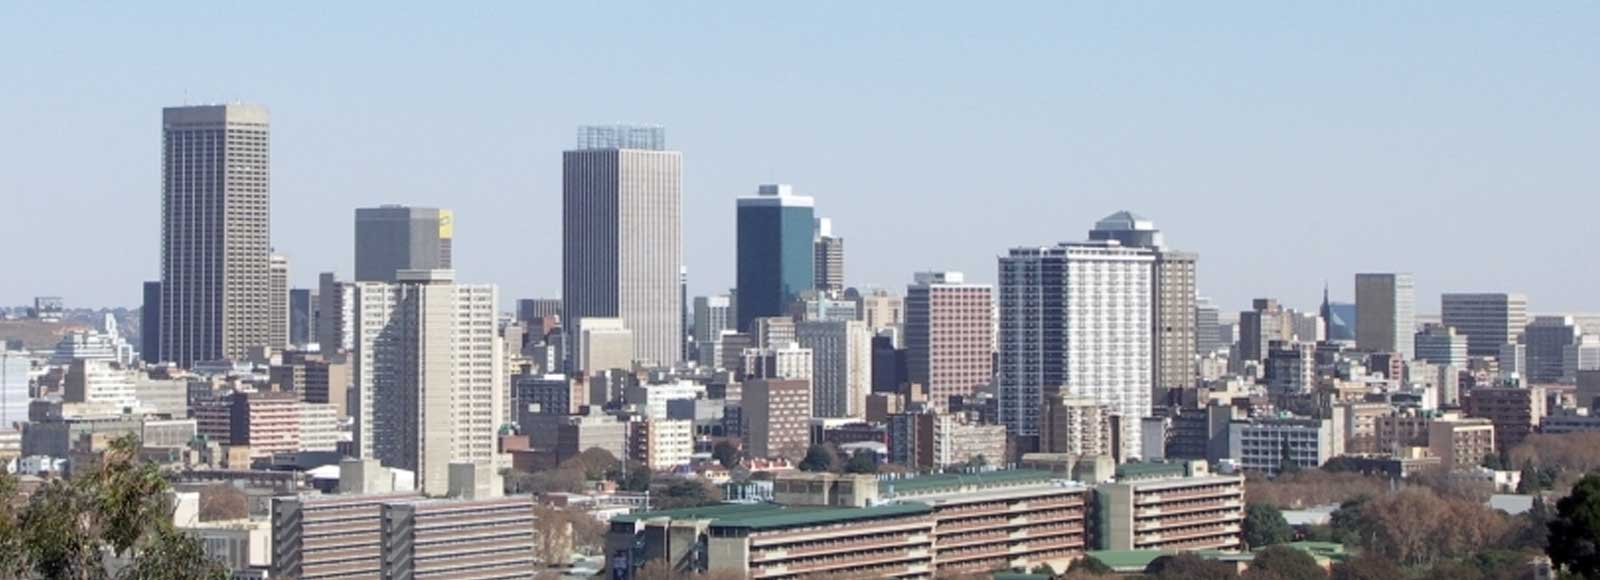 Transfer Offers in Johannesburg. Low Cost Transfers in  Johannesburg